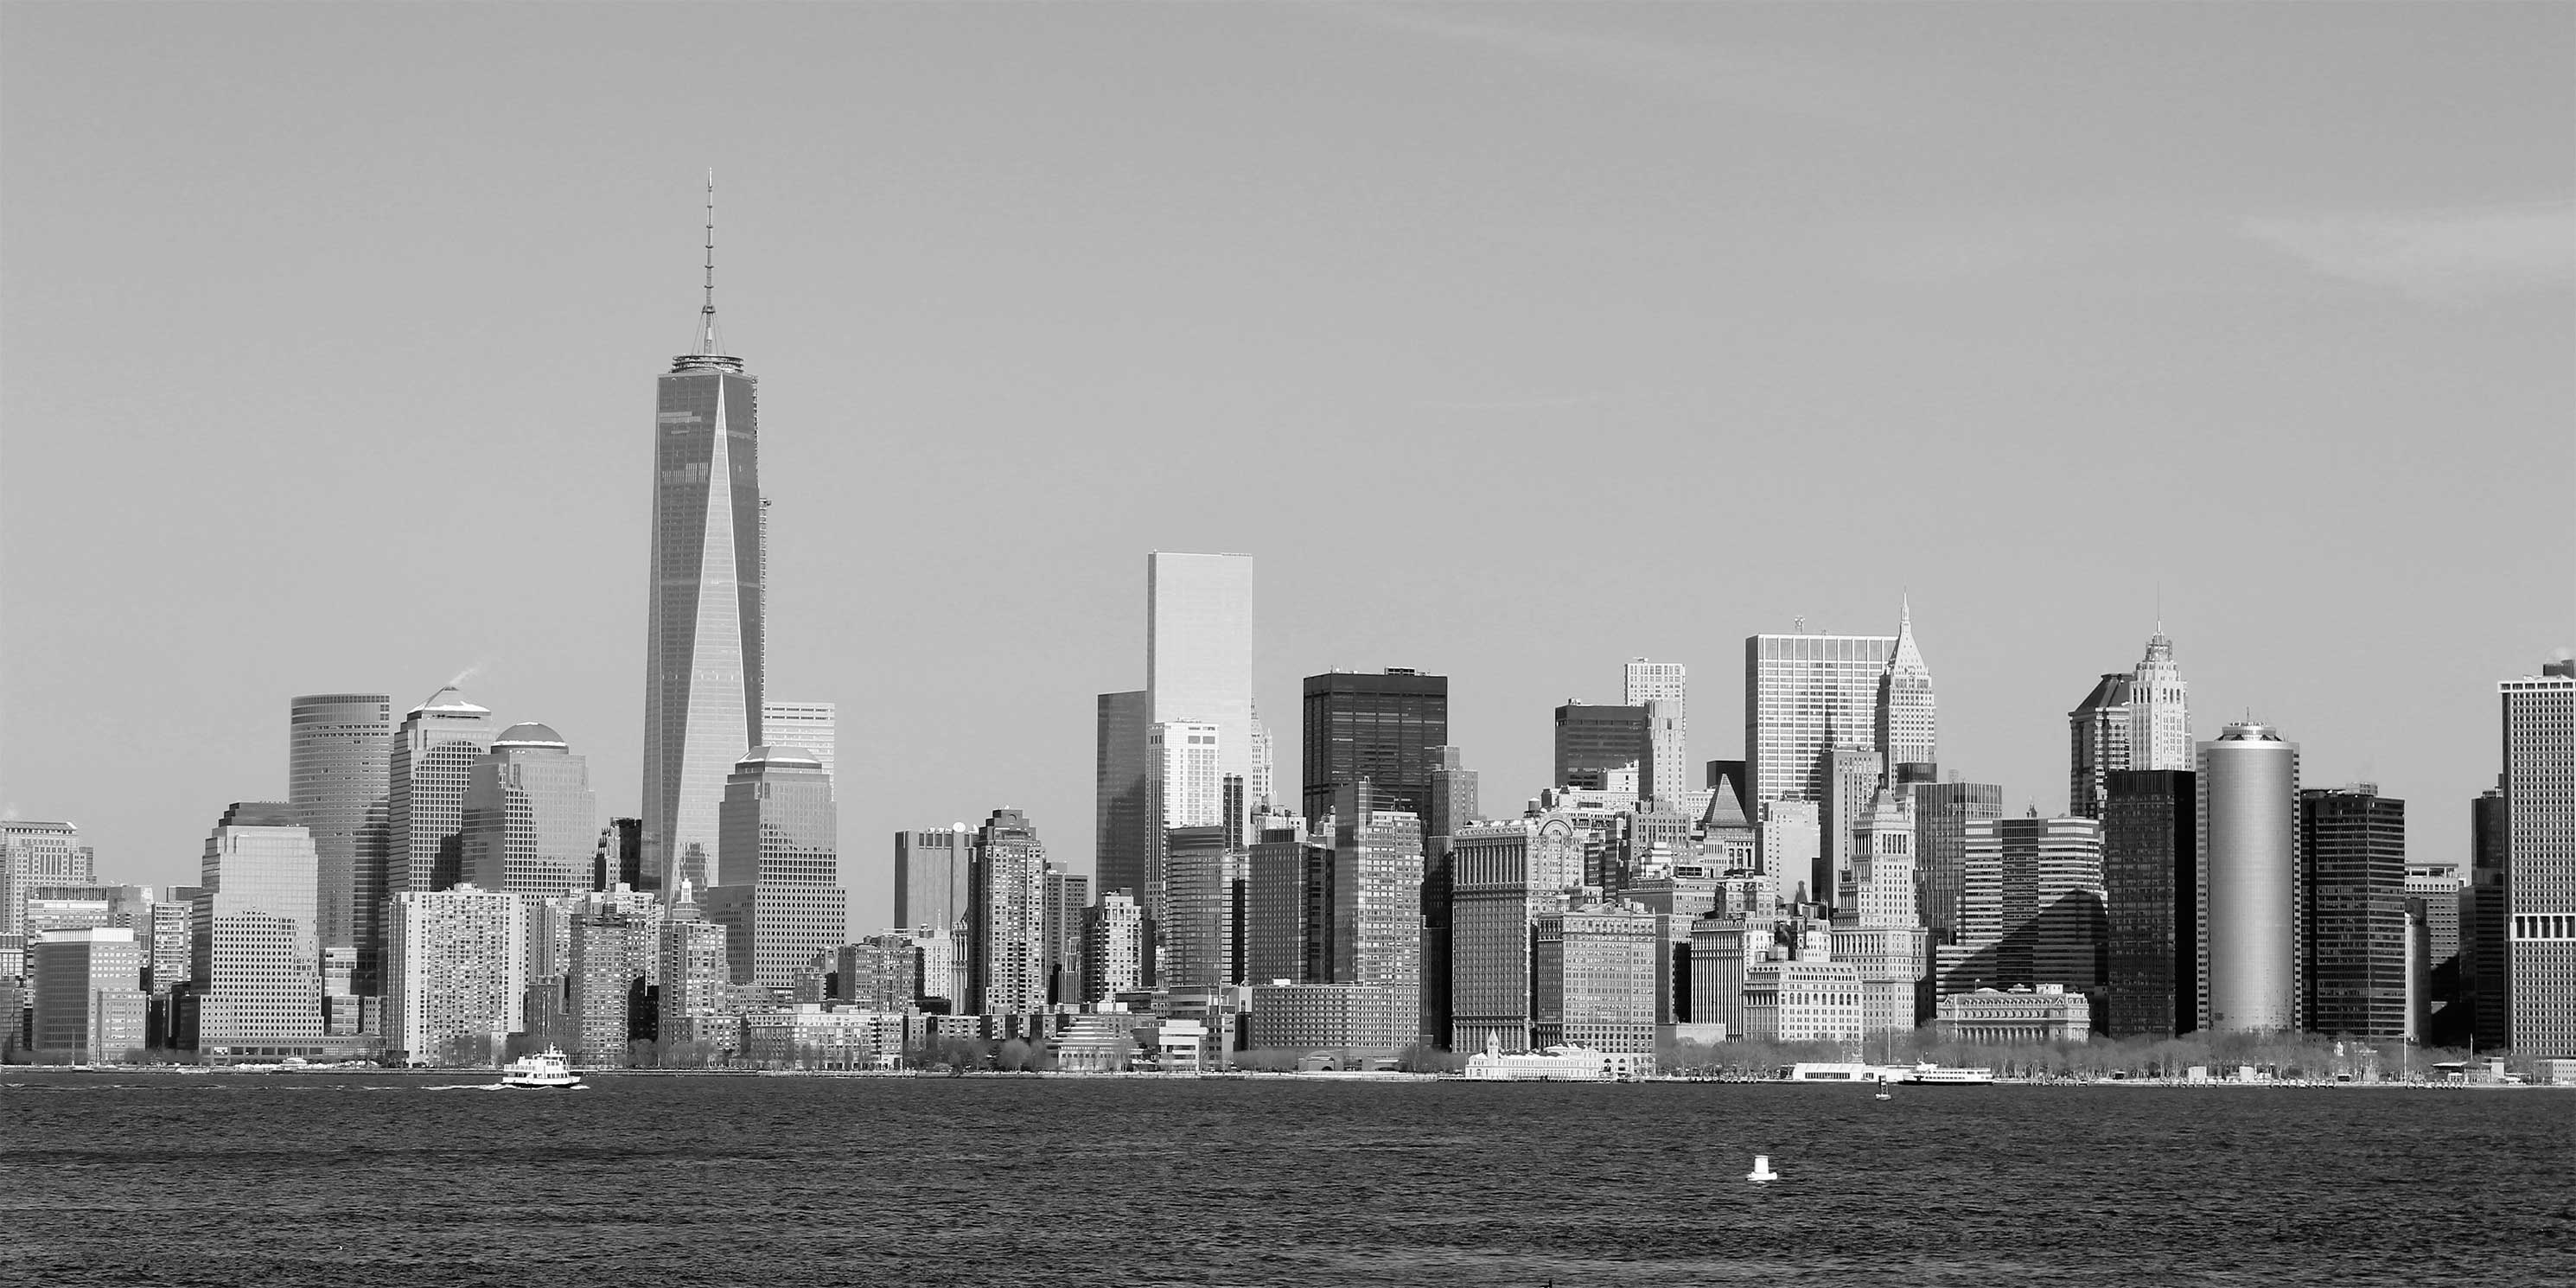 The Manhattan Skyline. Photo: Wikimedia Commons, Lesekreis.